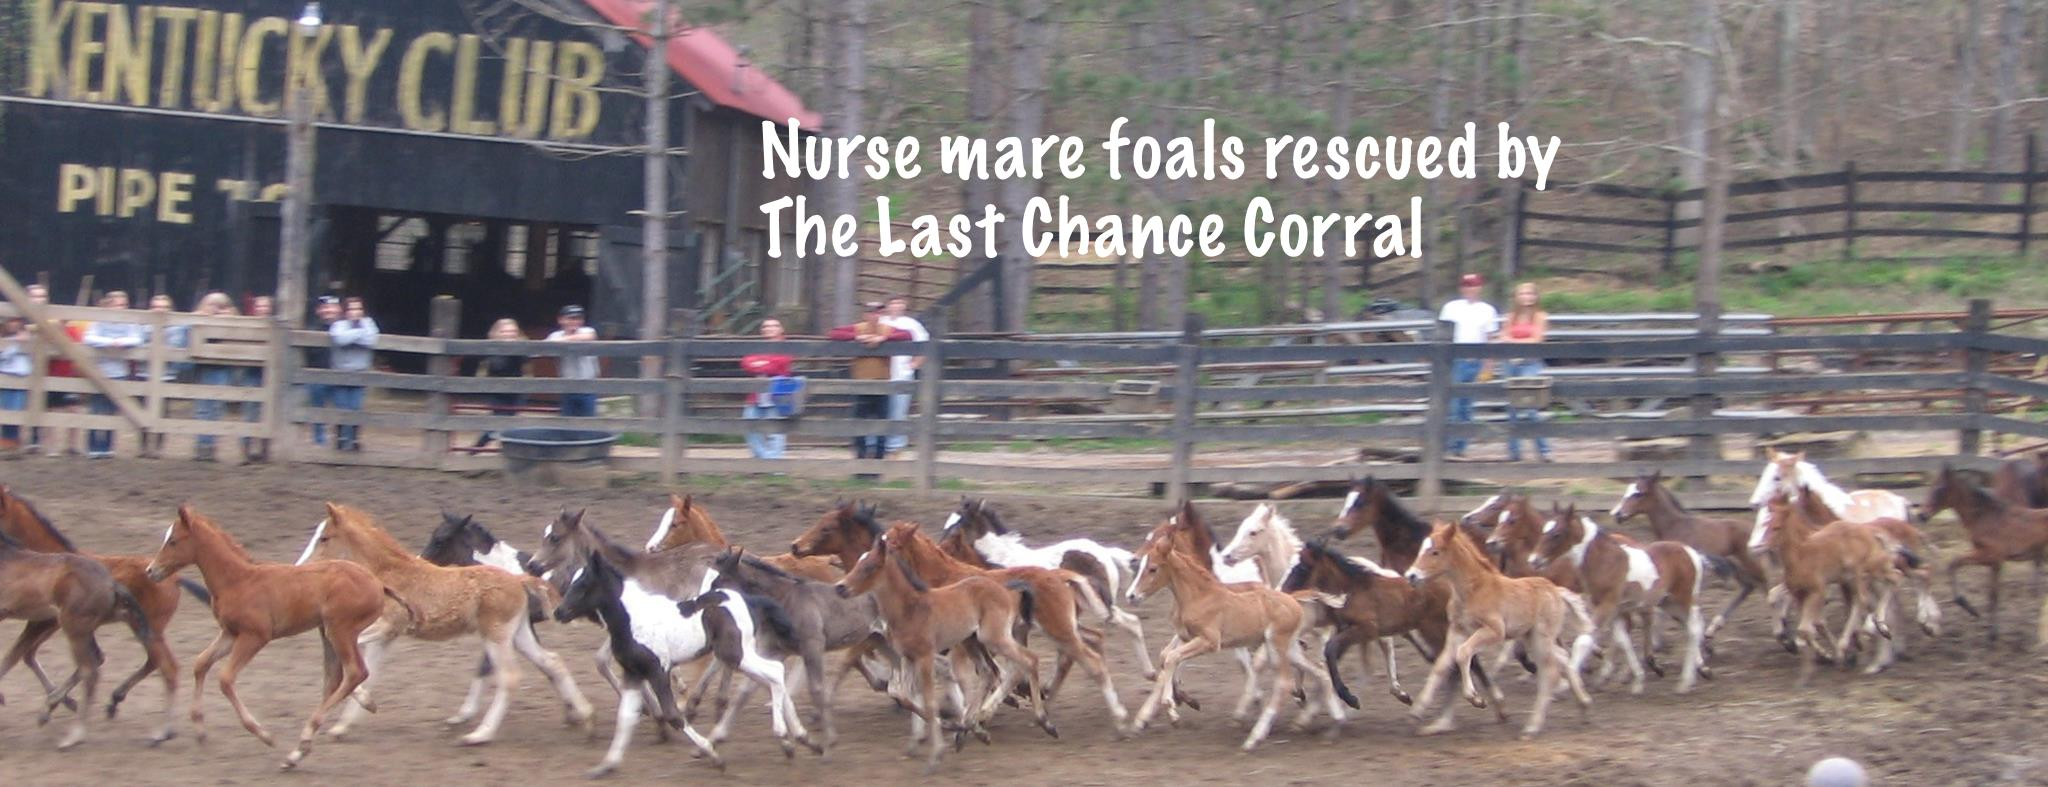 The youngest of the rescues, nurse mare foals, draw the most emotional reaction from people, myself included.